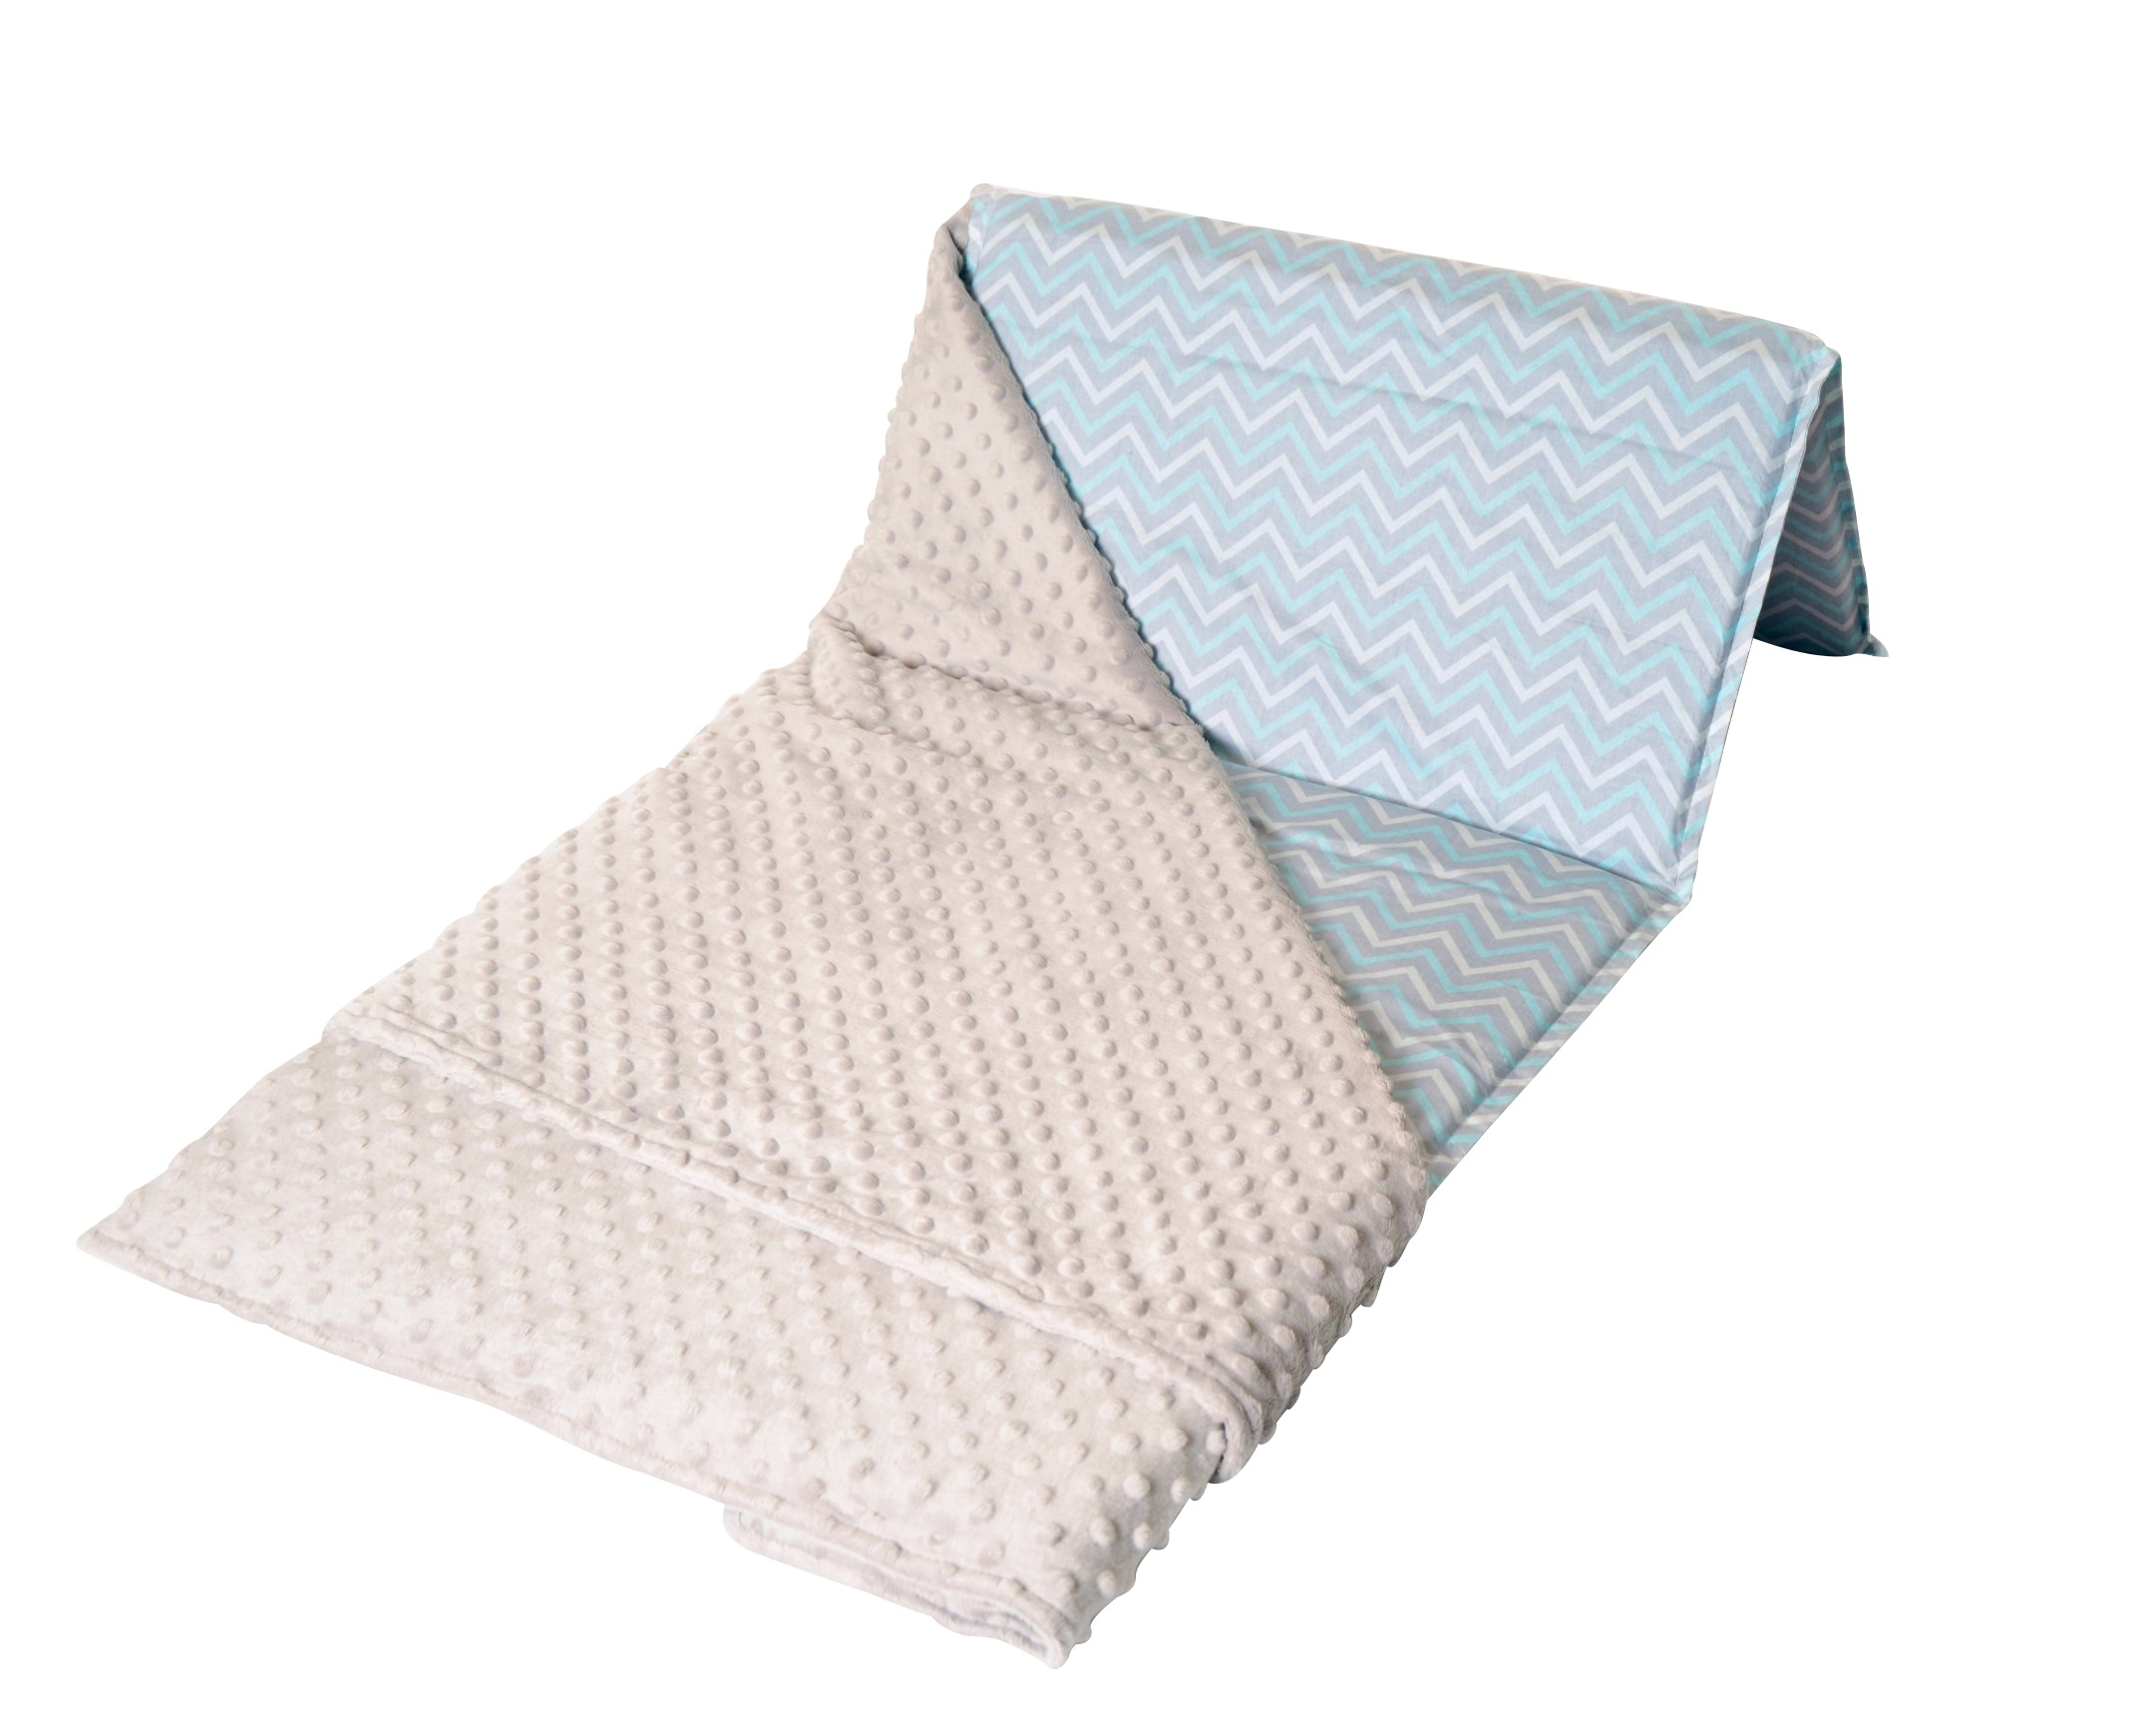 Light Blue and Winter Gray Nap Mat Cover with attached Blanket Image